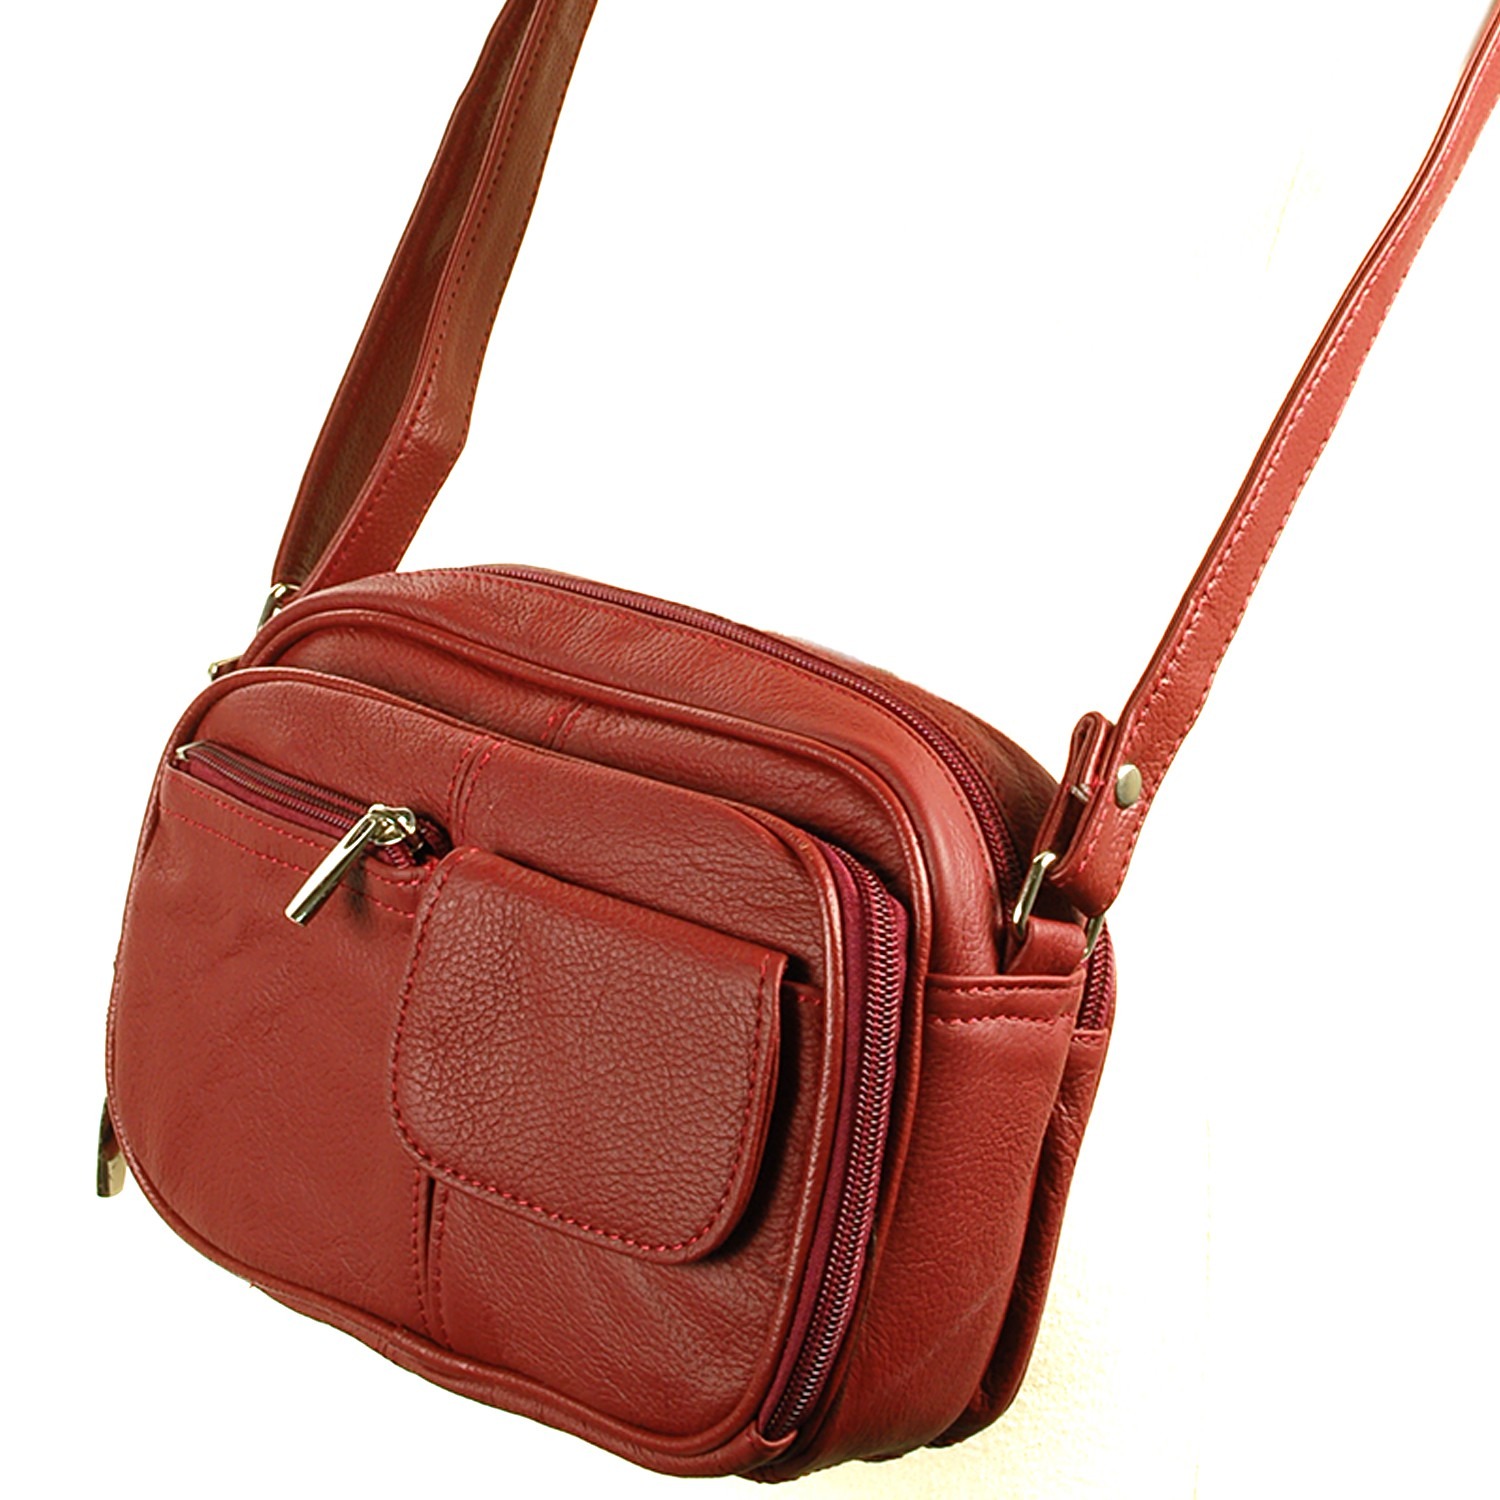 Find great deals on eBay for womens large purses. Shop with confidence.